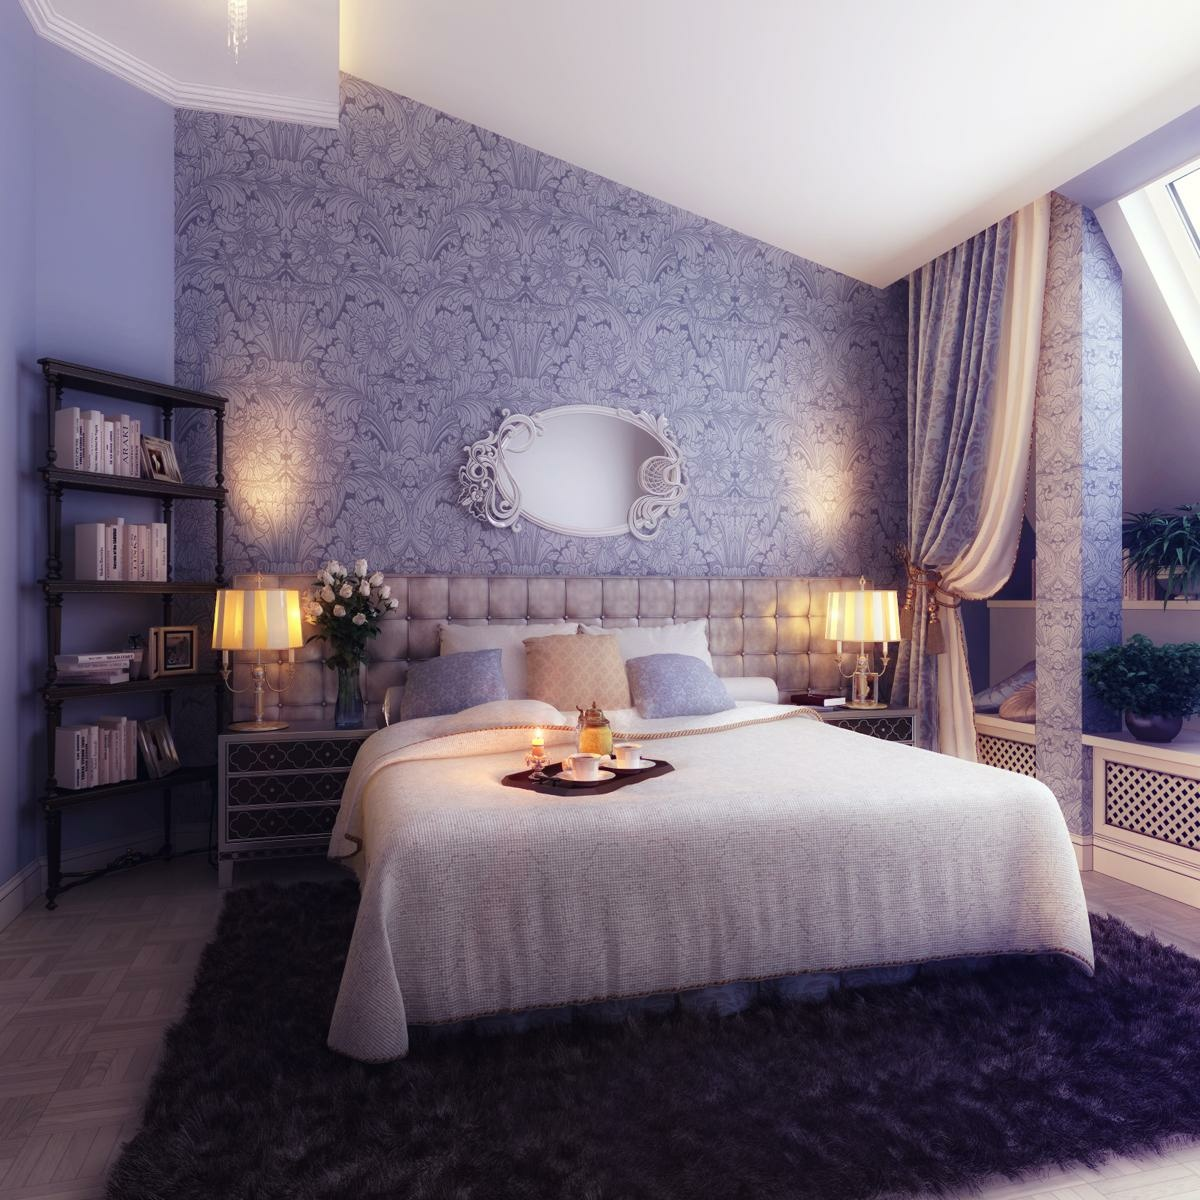 Bedrooms With Traditional Elegance: romantic bedrooms com